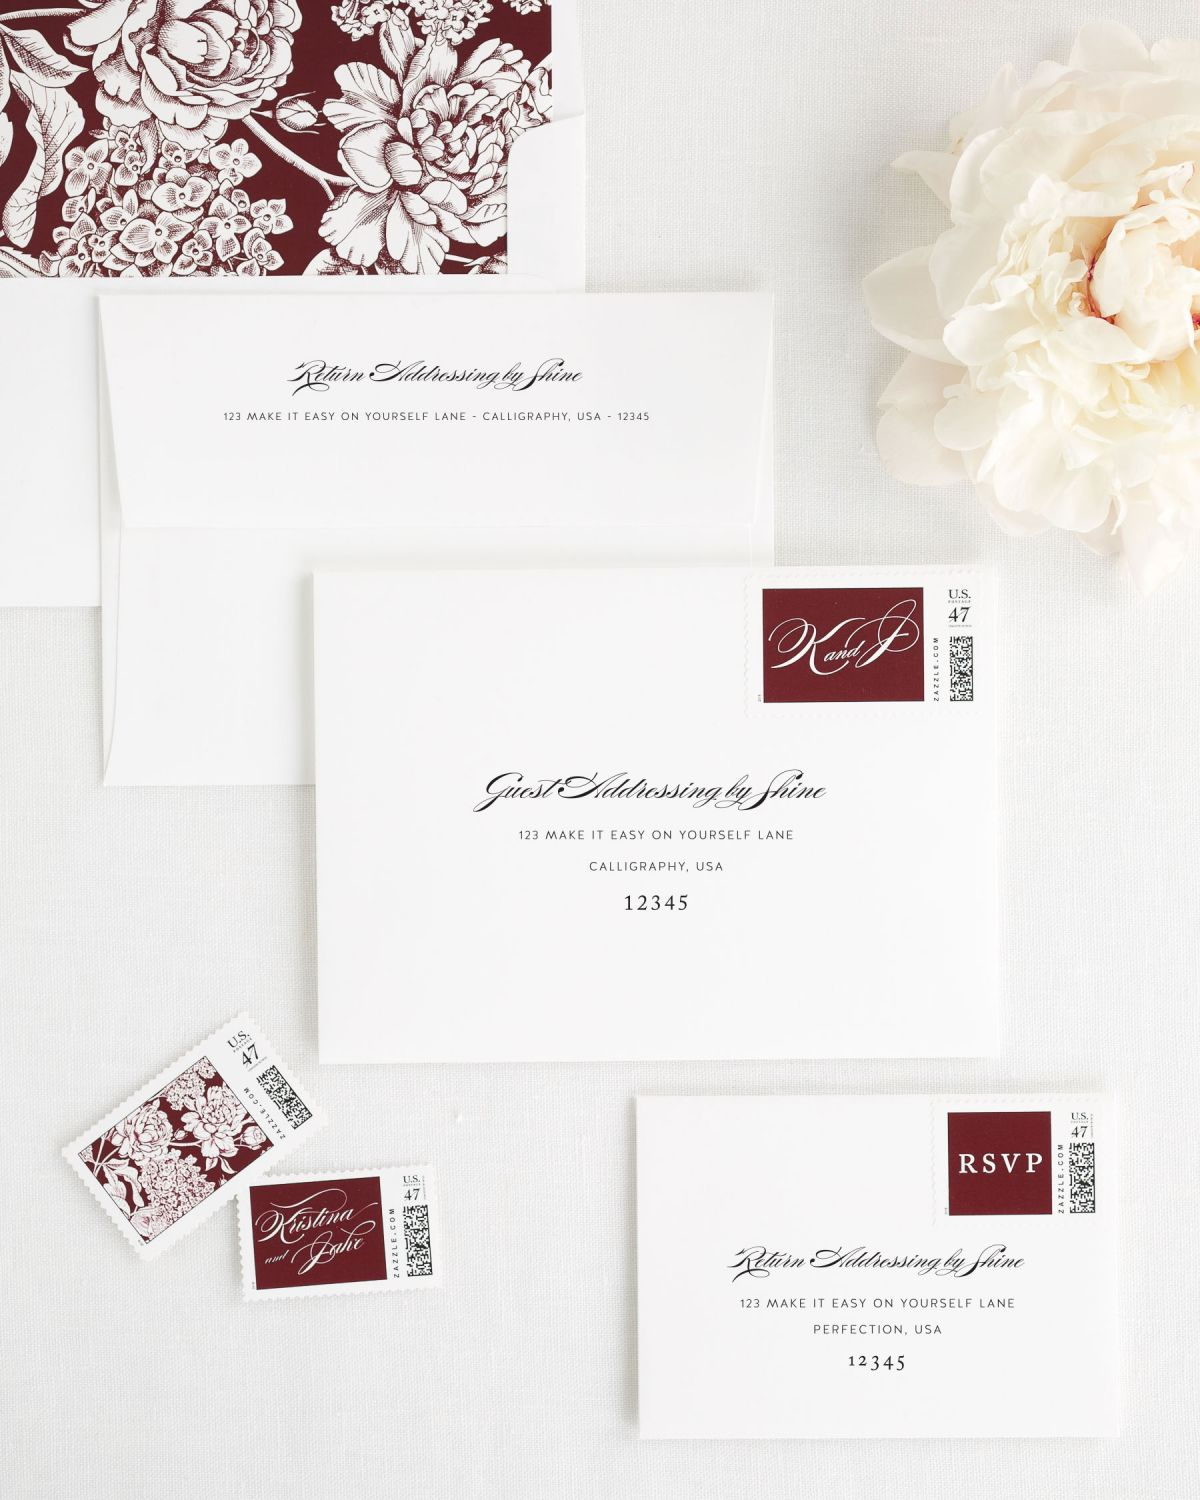 Wedding Invitation Envelopes with Cabernet Personalized Postage and Floral Liner